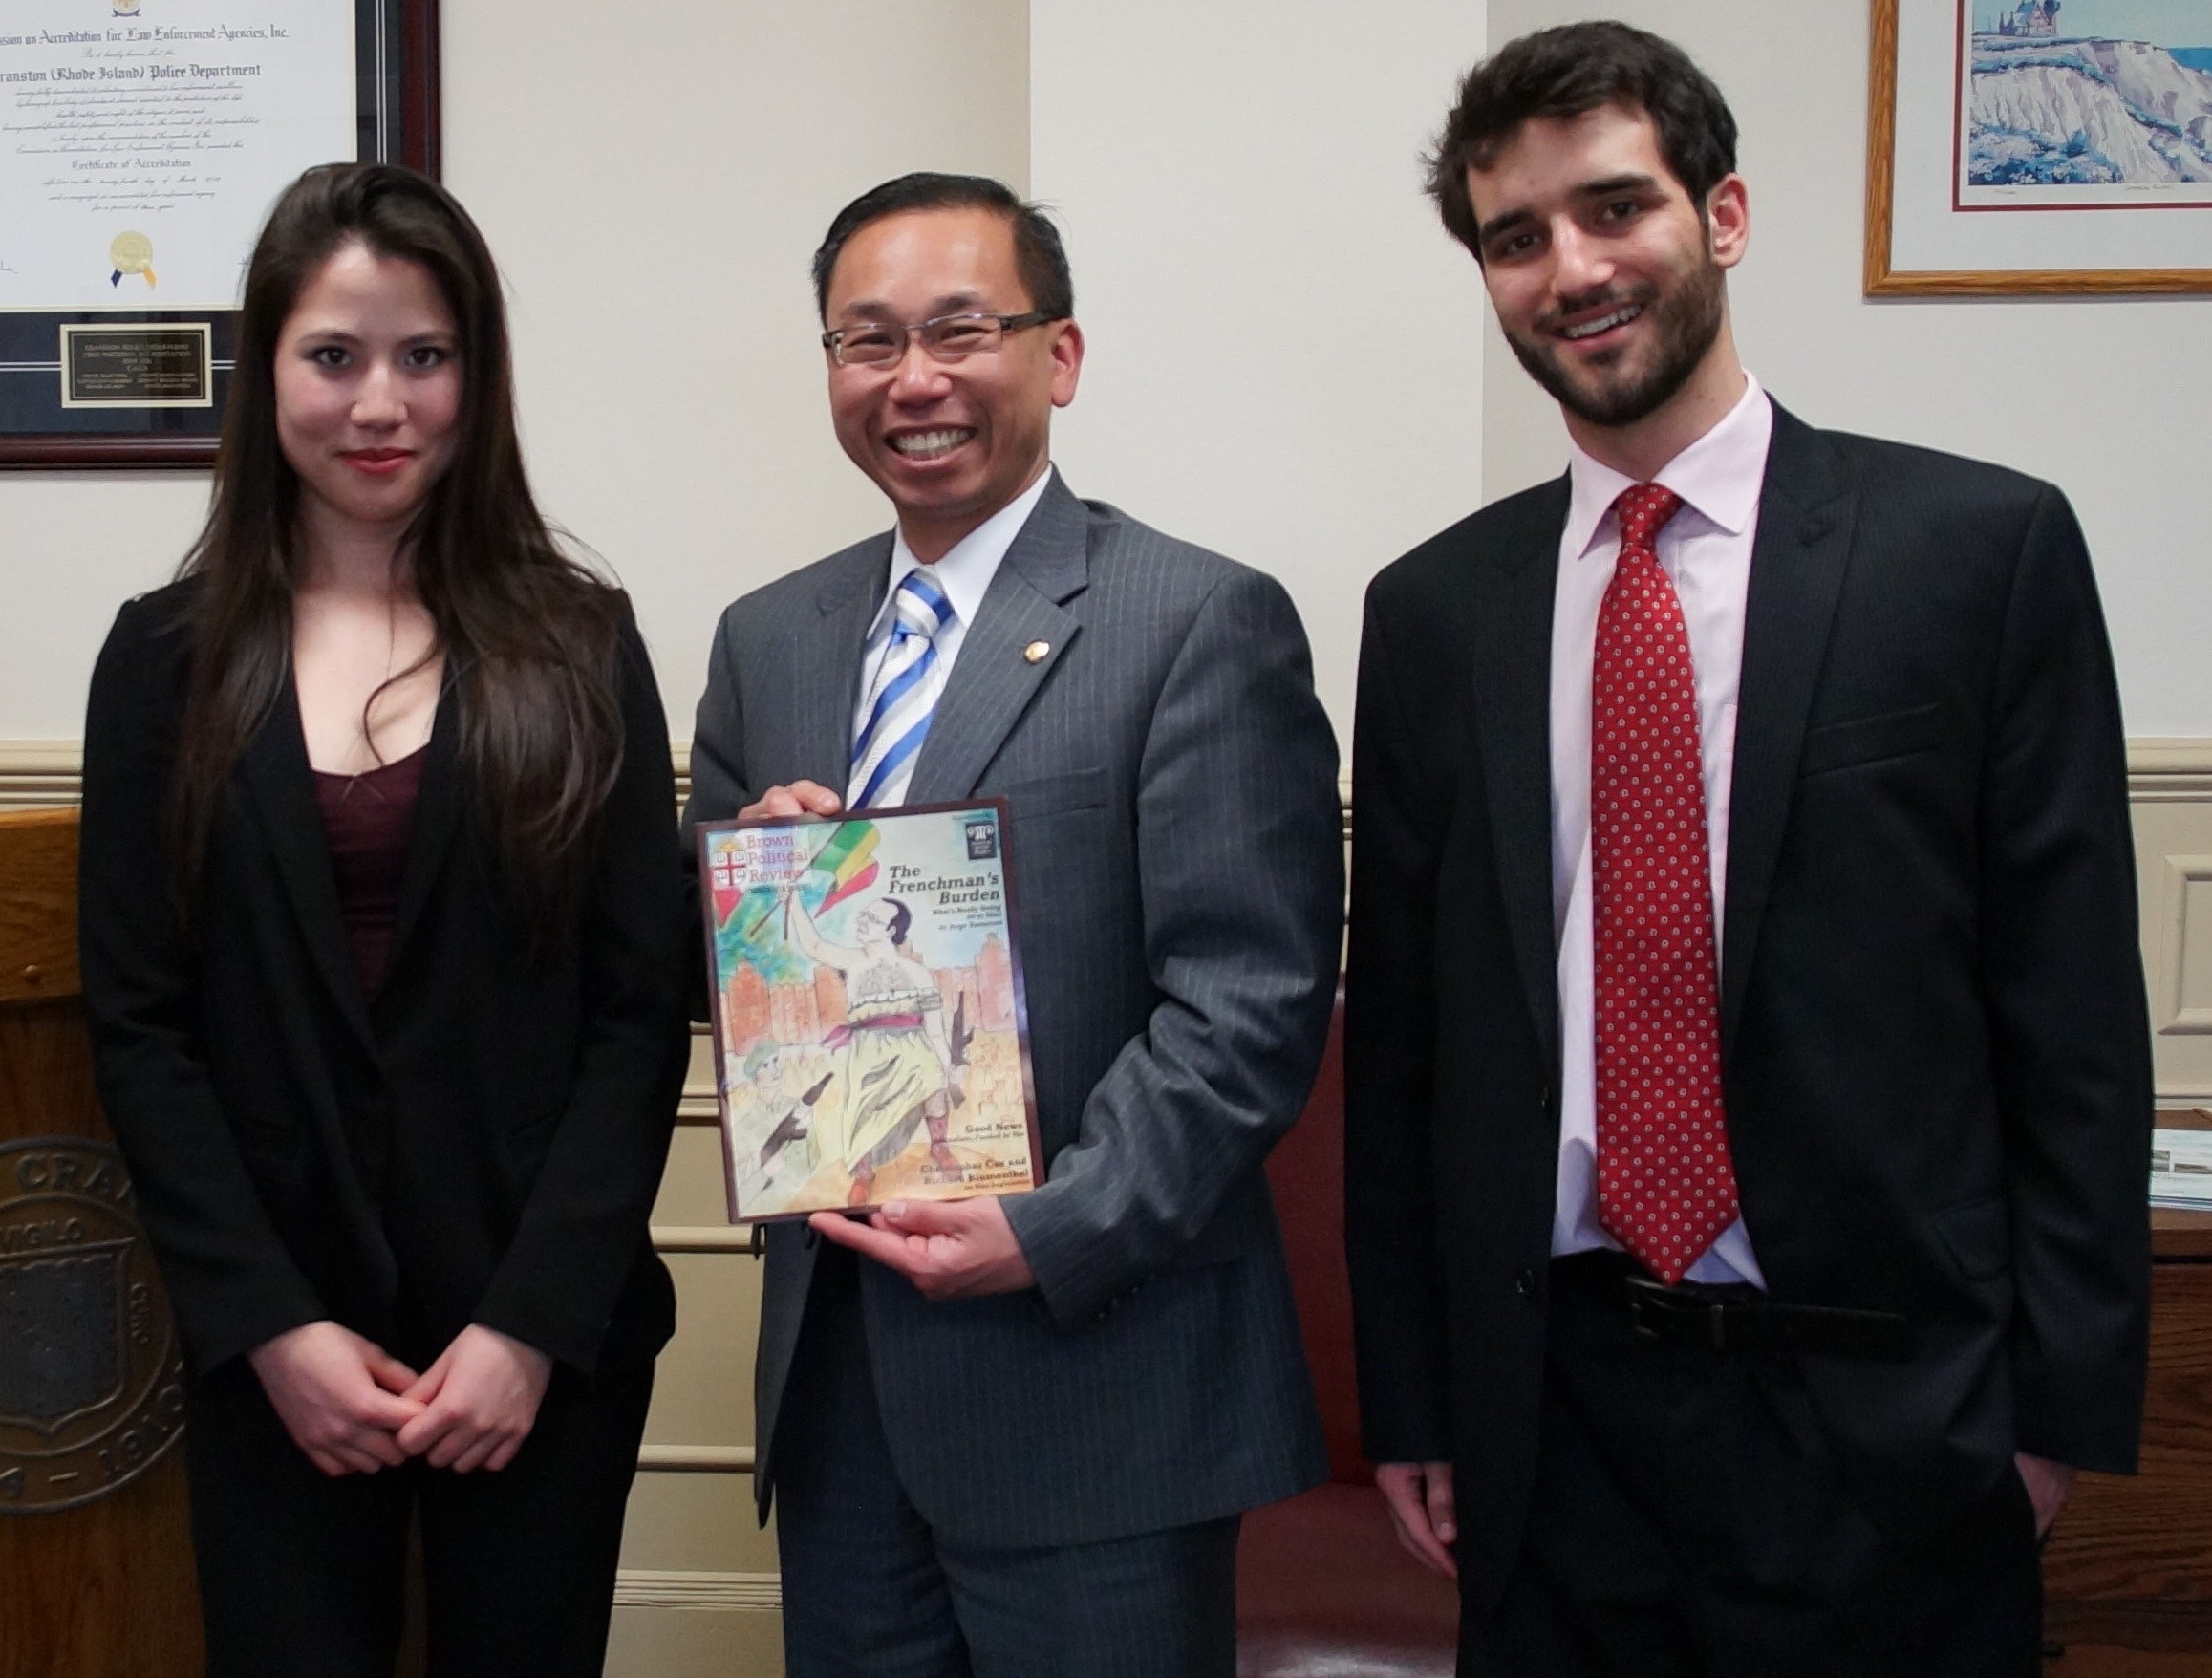 Mayor Fung poses with Interview Director Emily Gelber and co-Editor-in-Chief Alexi Diplas.